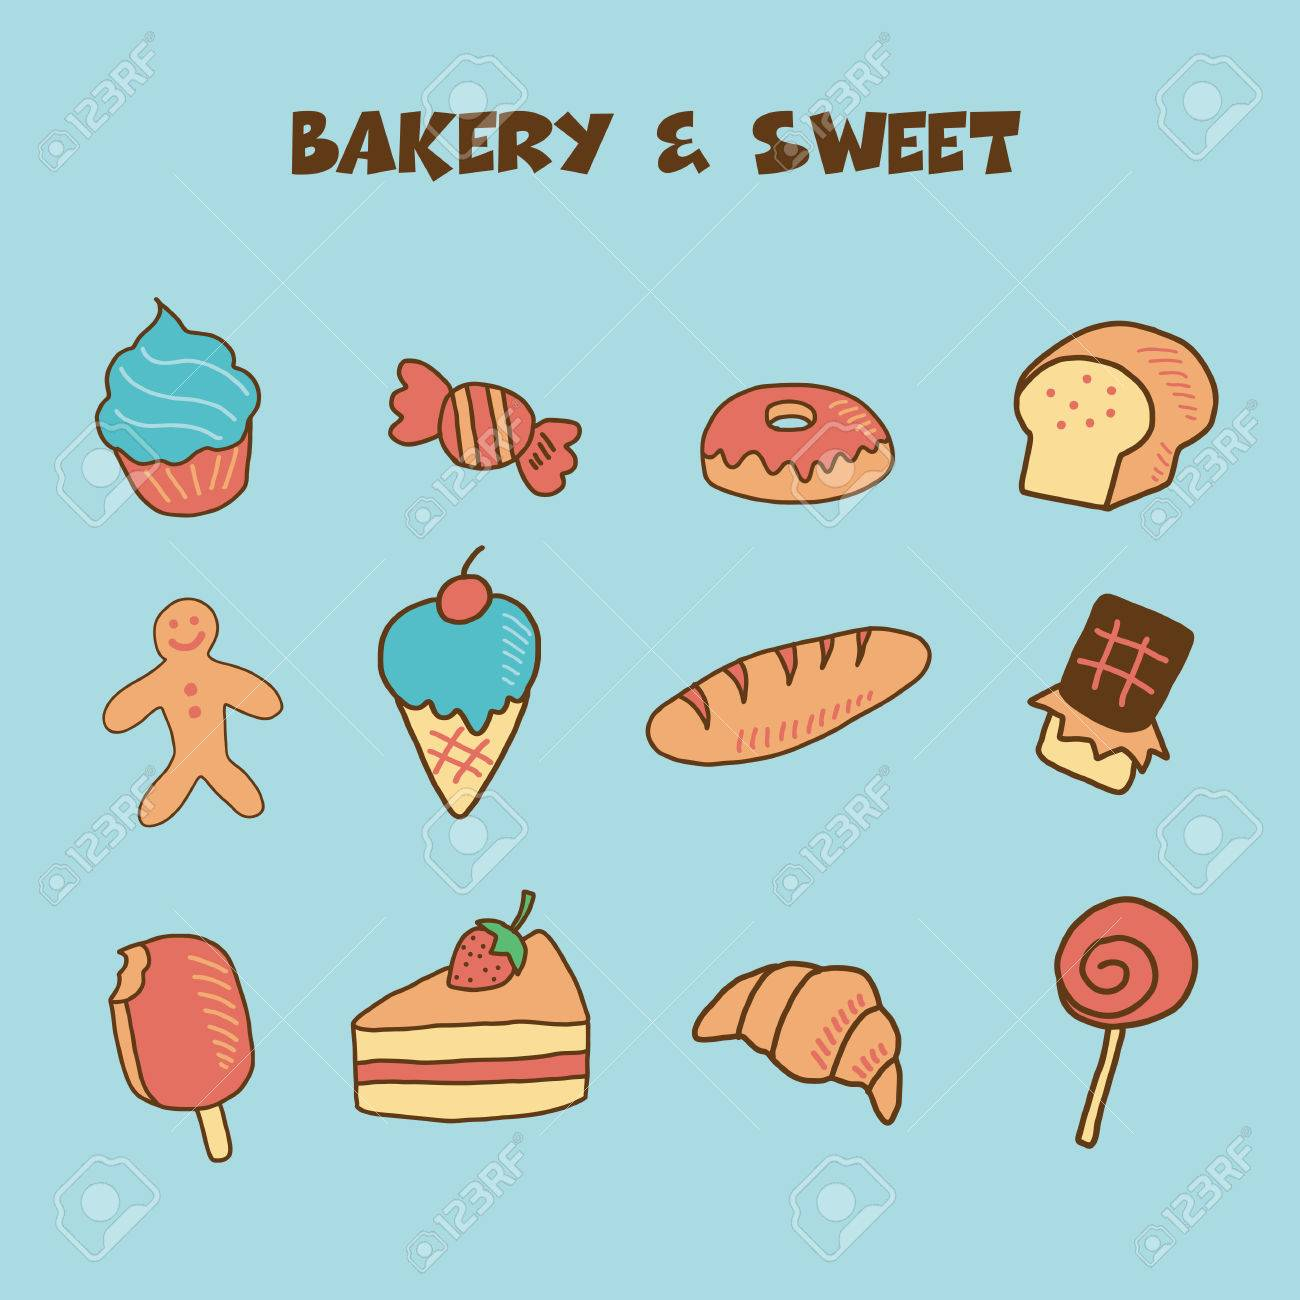 1300x1300 Bakery And Sweet Icon, Doodle Hand Drawing Style Royalty Free